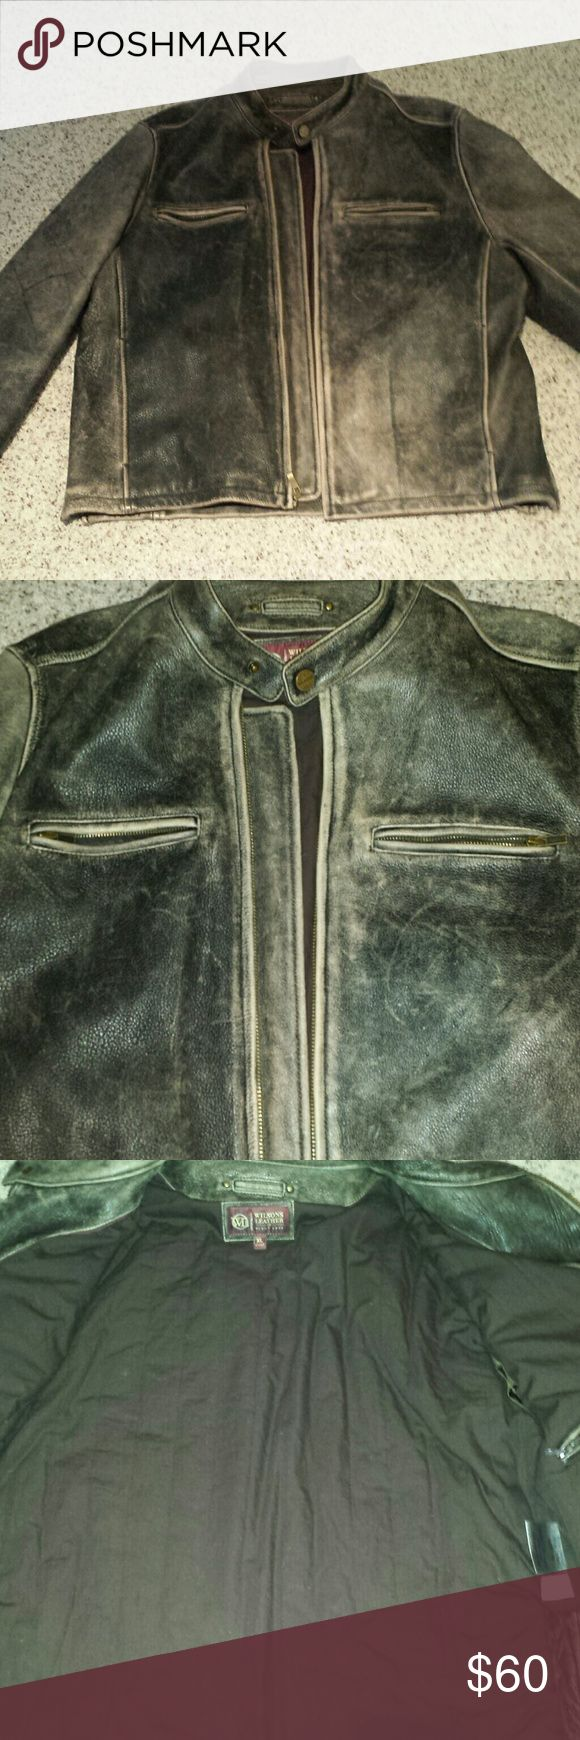 Men's leather bomber jacket Black and tan leather.  Zippers at wrists. Zipper up. Two zipper breast pockets. Snap at neck. Two waist pockets and an interior pocket. Good condition. Some marks on arm but not damaged. Wilsons Leather Jackets & Coats Bomber & Varsity